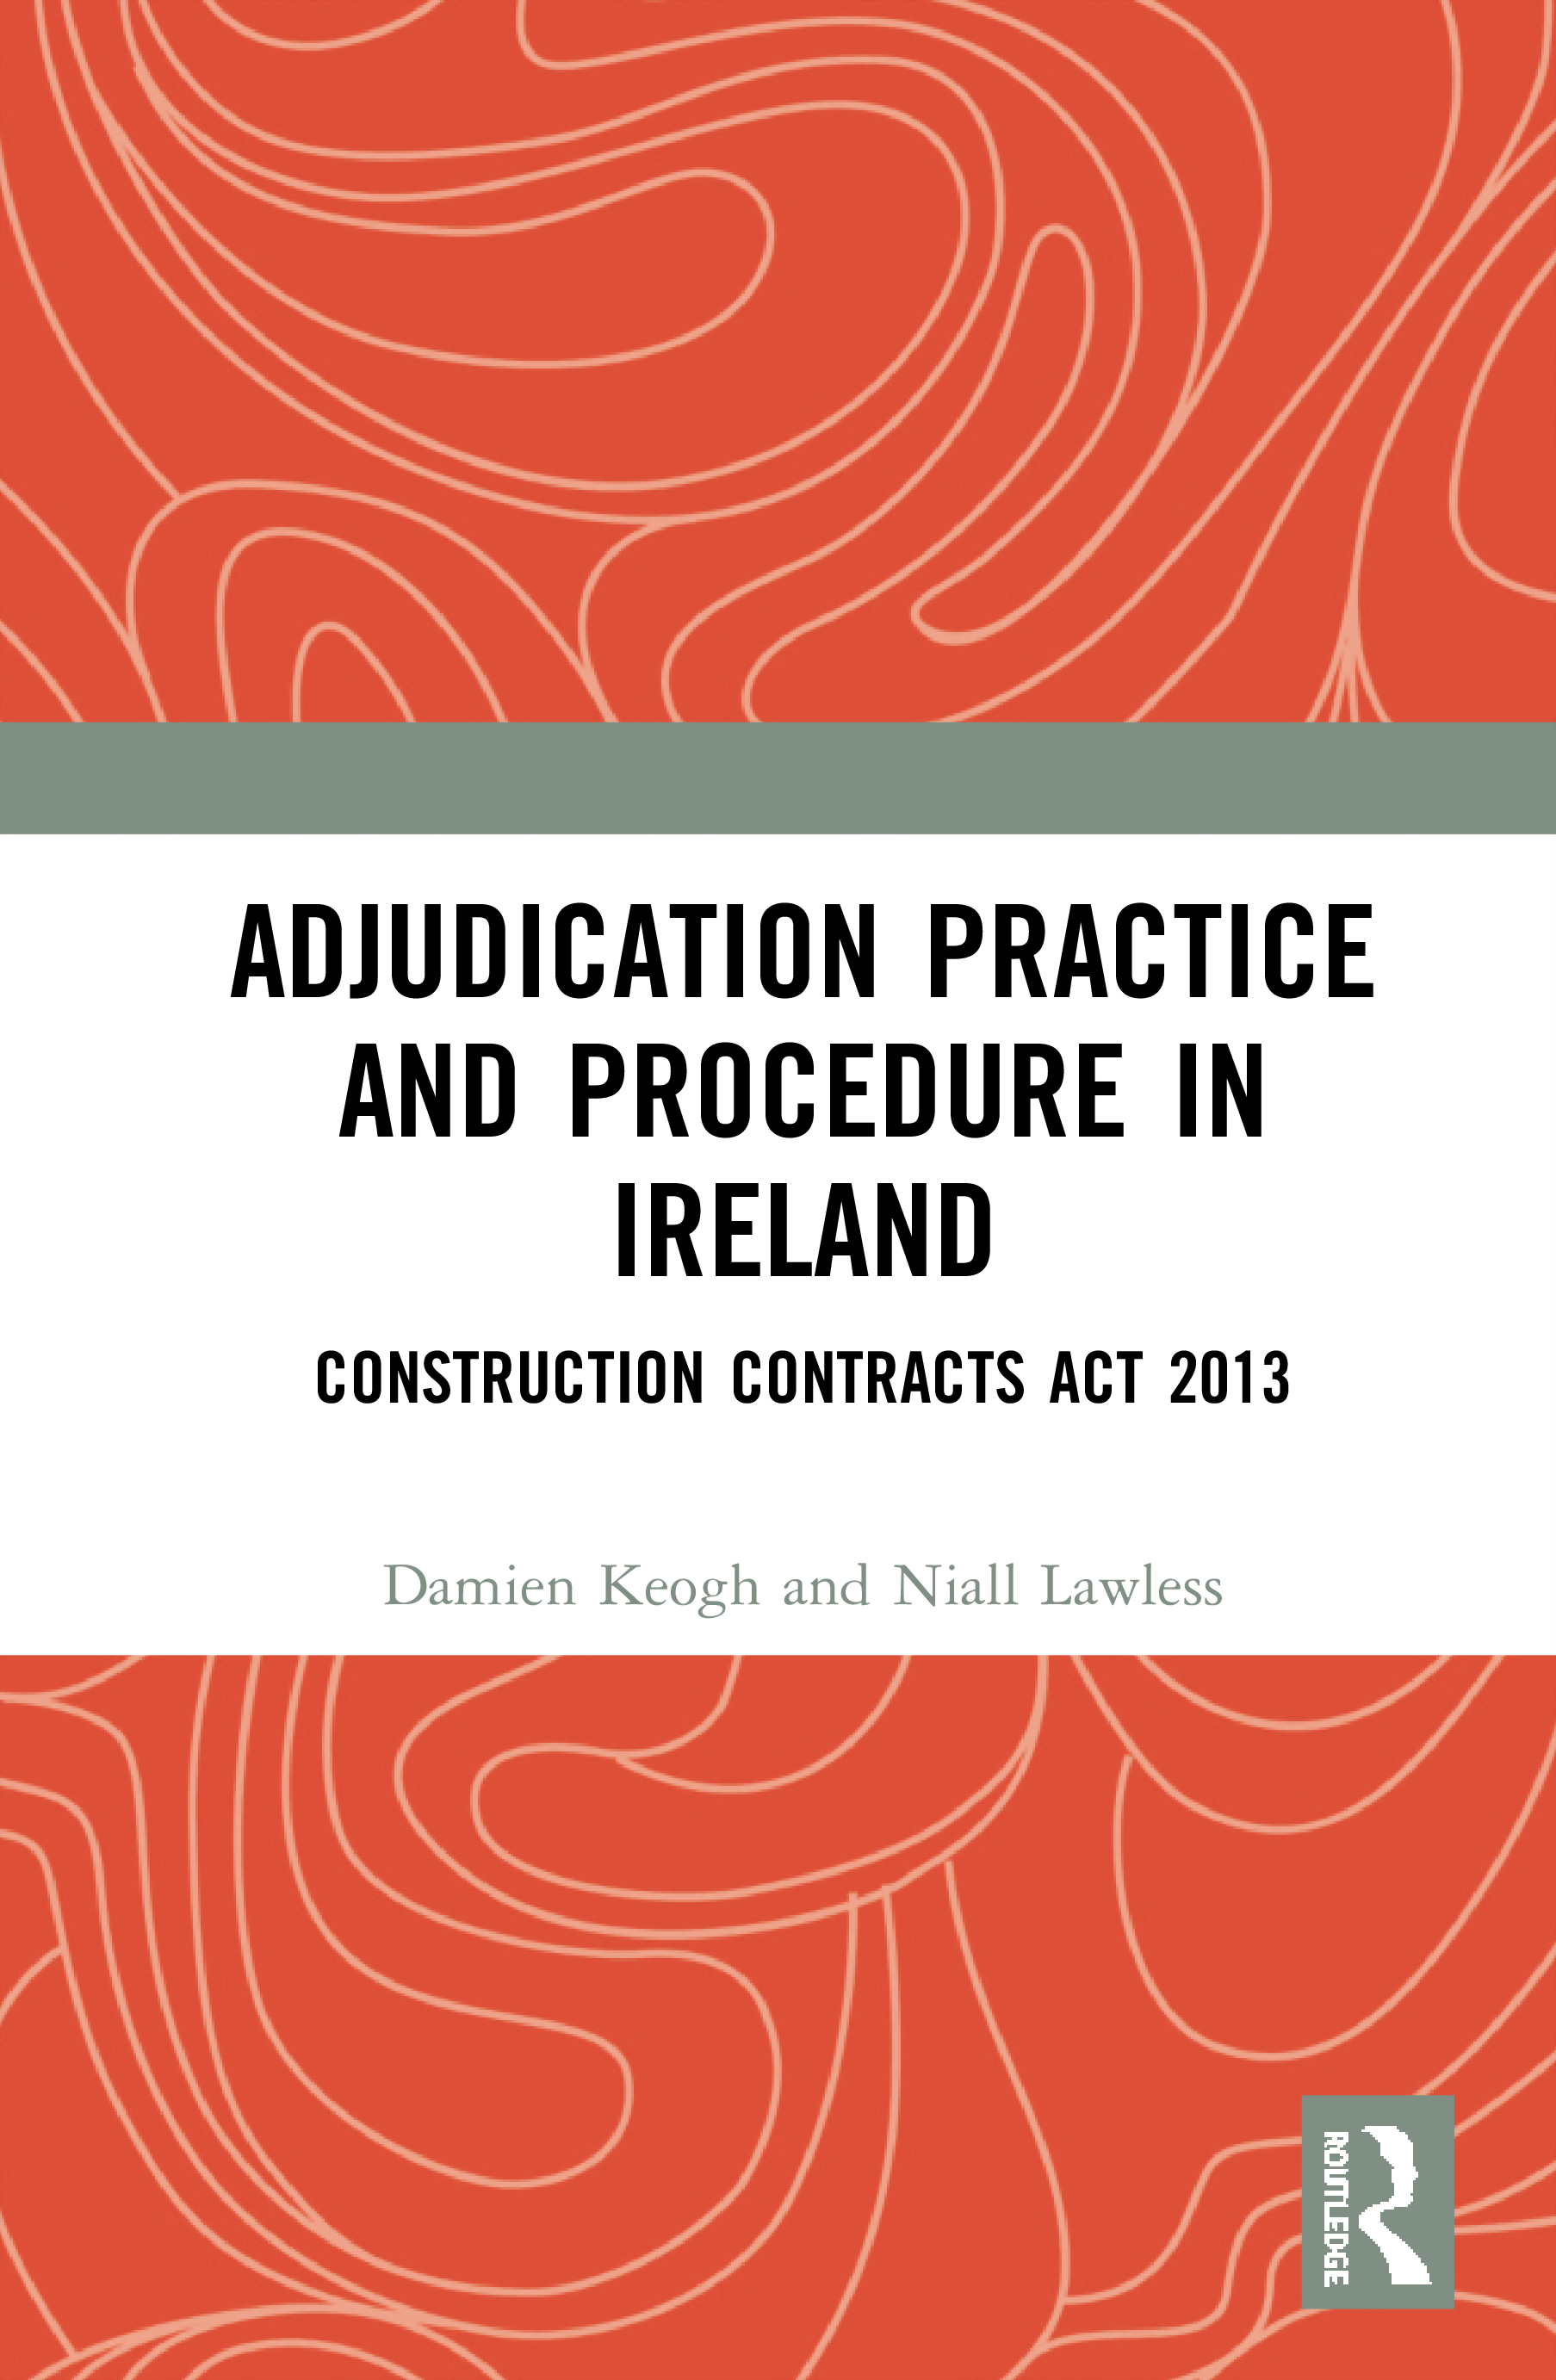 Adjudication Practice and Procedure: Construction Contracts Act 2013 book cover